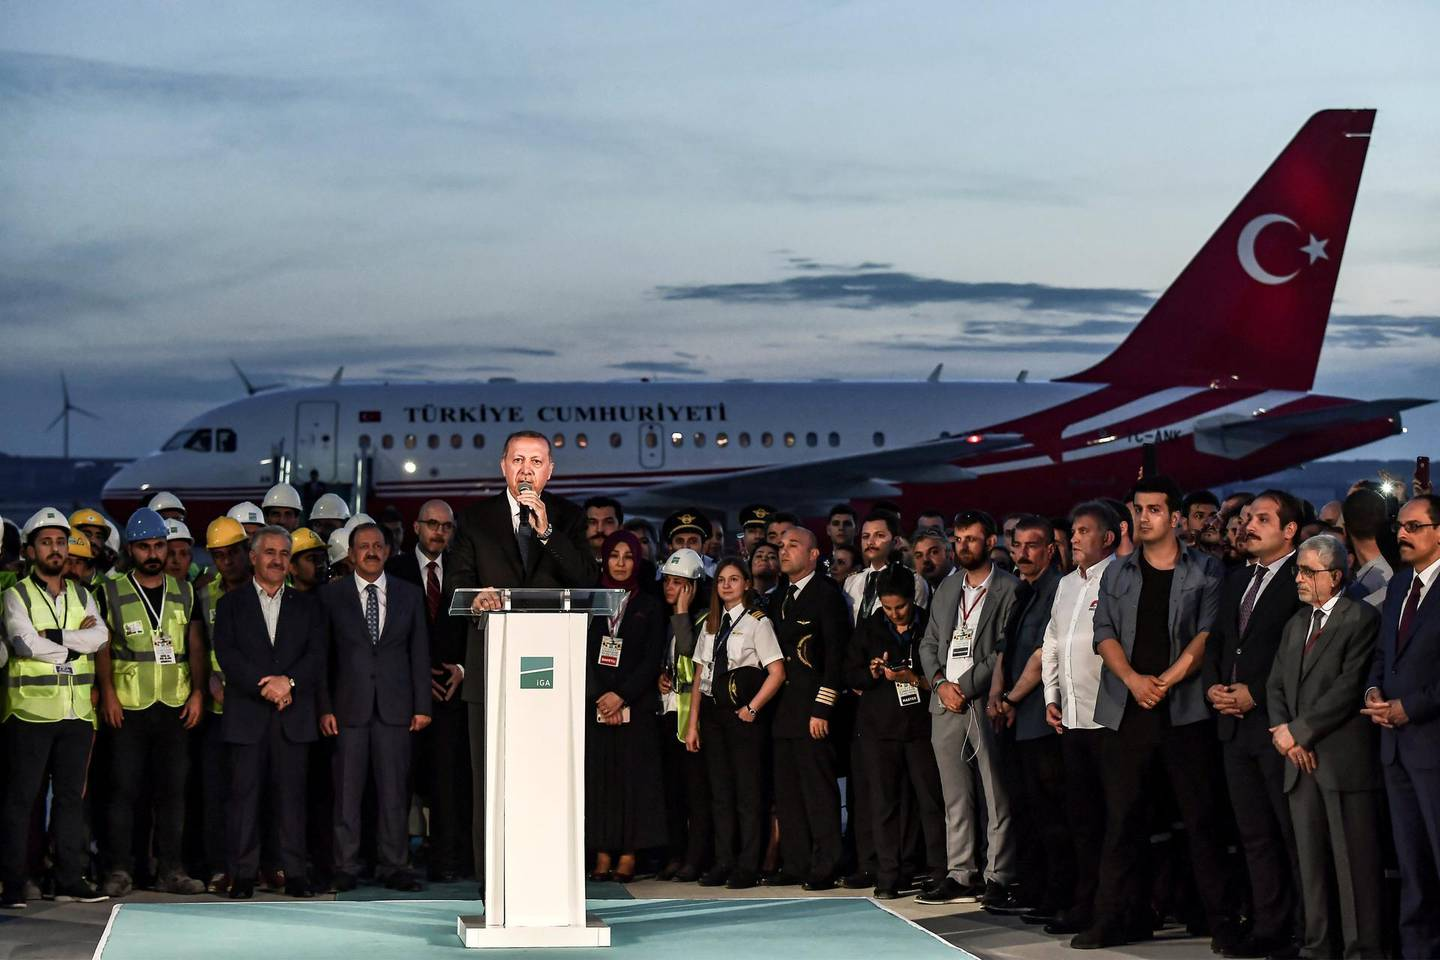 Turkish President Recep Tayyip Erdogan delivers a speech during a press conference following the first landing of his plane at the Istanbul New Airport, the third airport serving the city, located on the European side of Istanbul but on the Black Sea coast, on June 21, 2018. - The official inauguration ceremony of the Istanbul New Airport, which is set to become the world's largest once opened, is scheduled for October 29, 2018. (Photo by Aris MESSINIS / AFP)